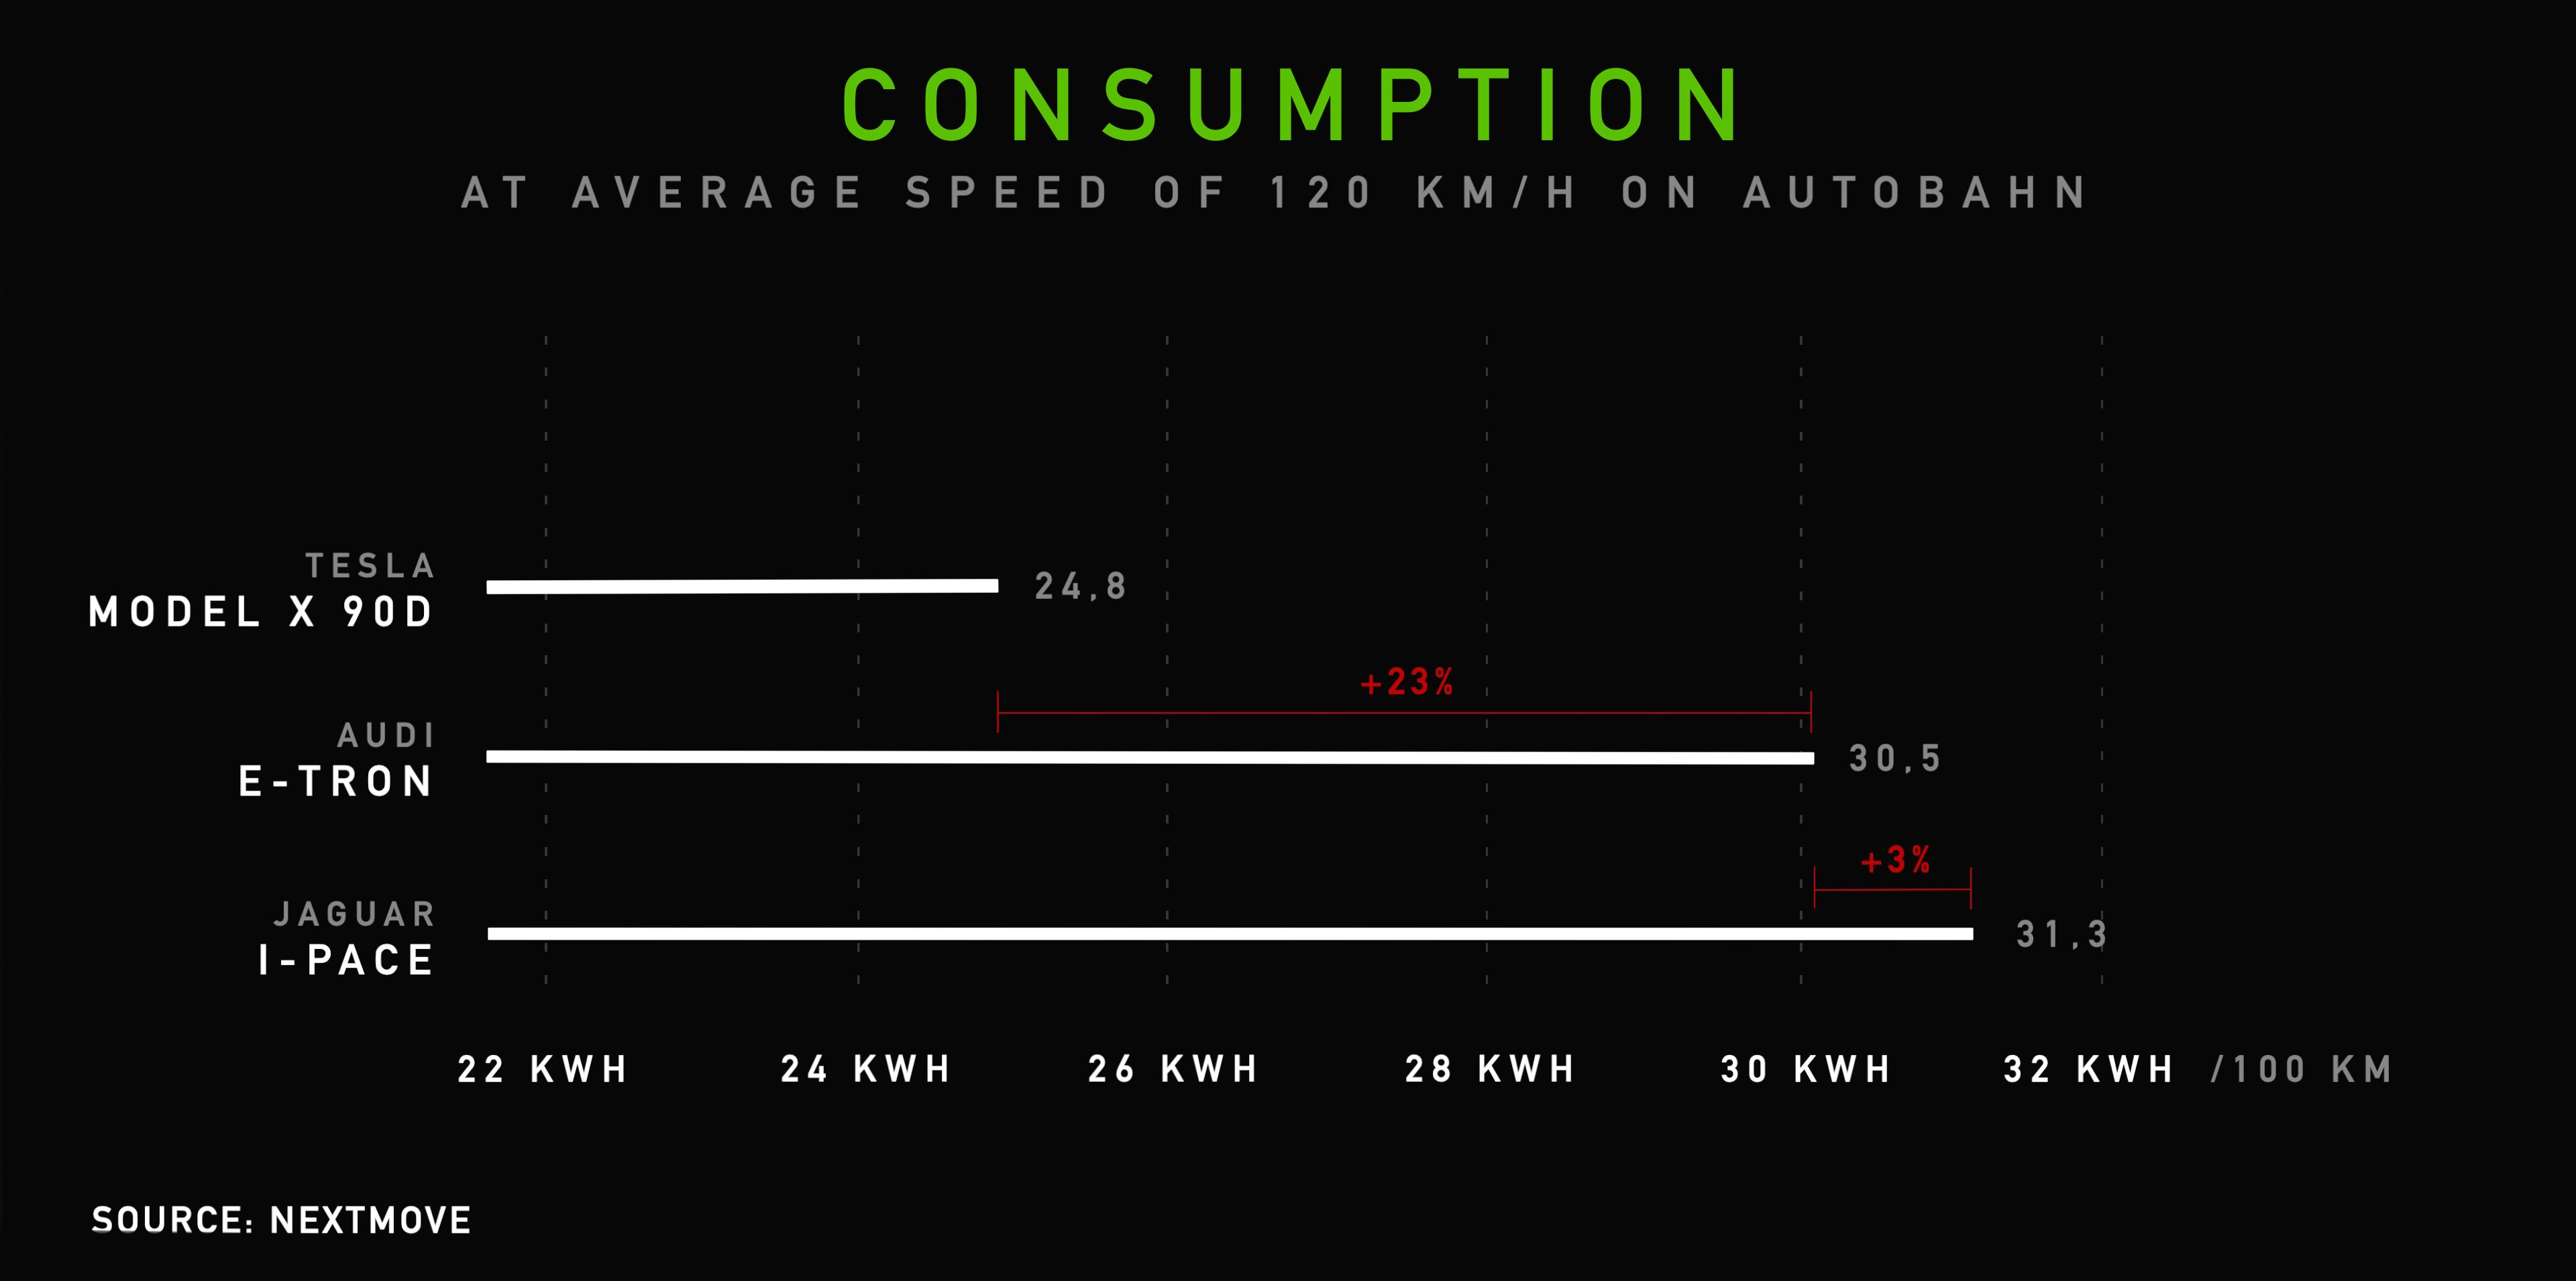 2_Consumption_EN-Audi-etron-Tesla-Model-X-Jaguar-I-PACE-Range-Consumption-Test-nextmove (1)